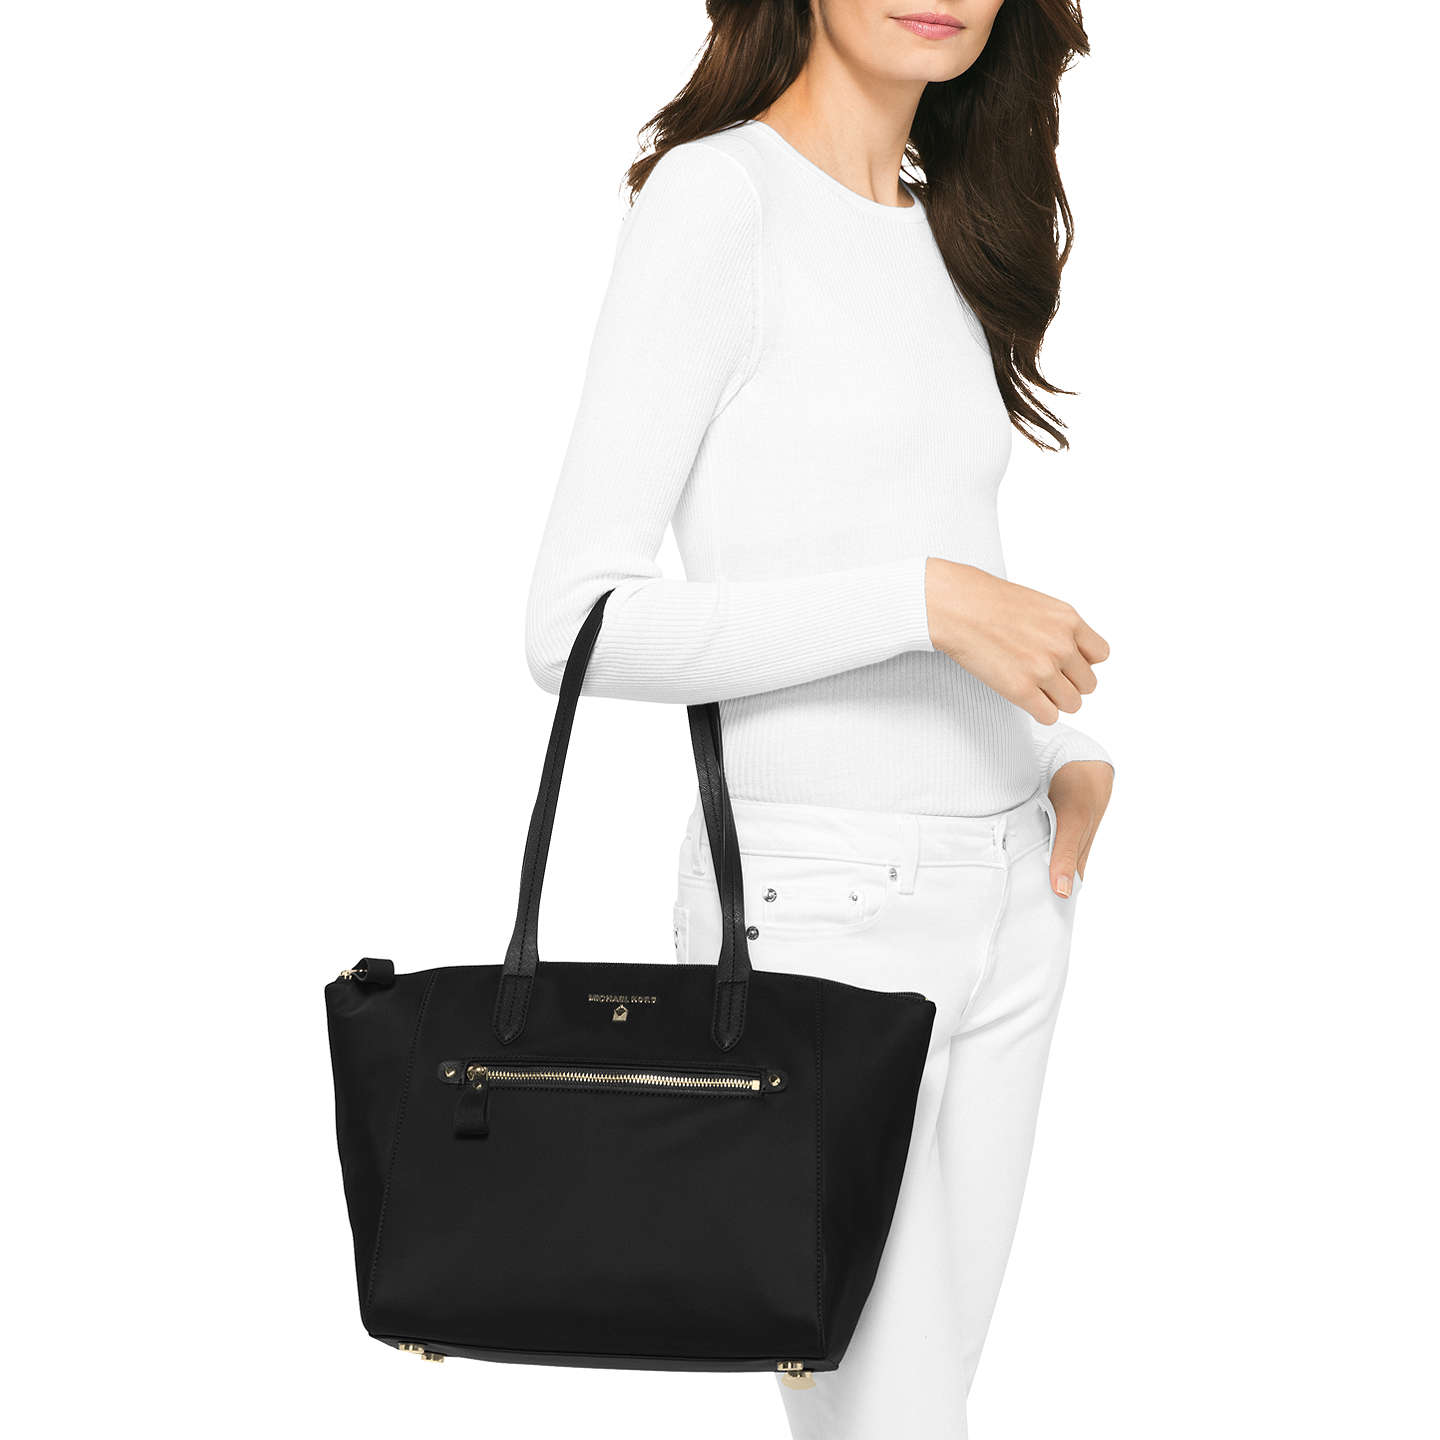 BuyMICHAEL Michael Kors Kesley Medium Zip Top Tote Bag, Black Online at johnlewis.com